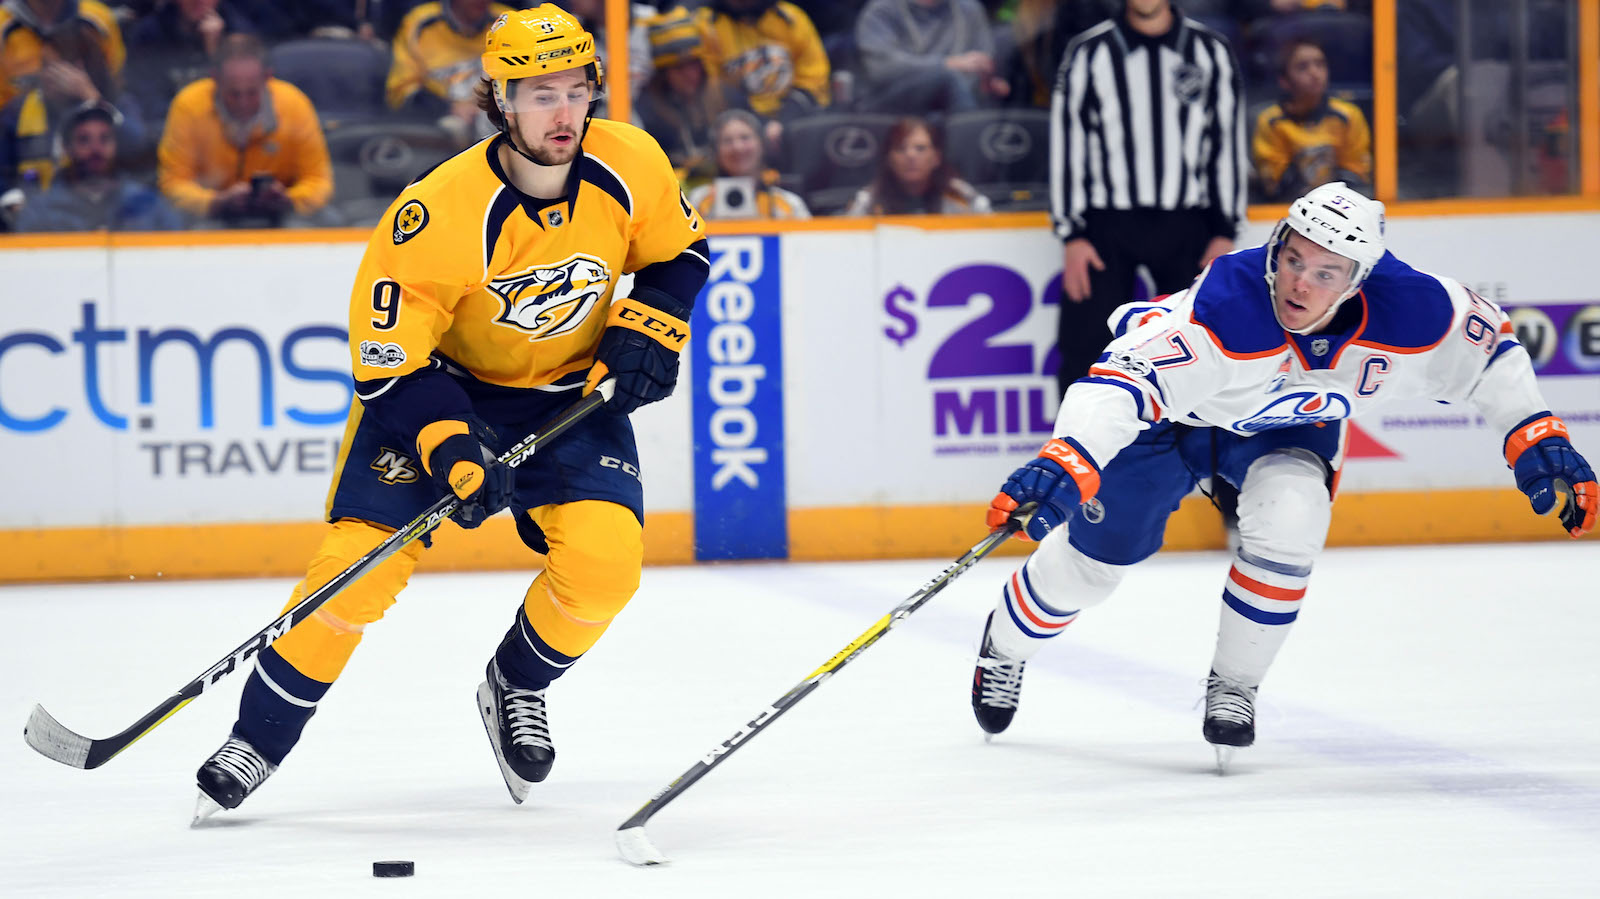 Feb 2, 2017; Nashville, TN, USA; Nashville Predators left wing Filip Forsberg (9) skates with the puck as Edmonton Oilers center Connor McDavid (97) chases during the second period at Bridgestone Arena. Mandatory Credit: Christopher Hanewinckel-USA TODAY Sports